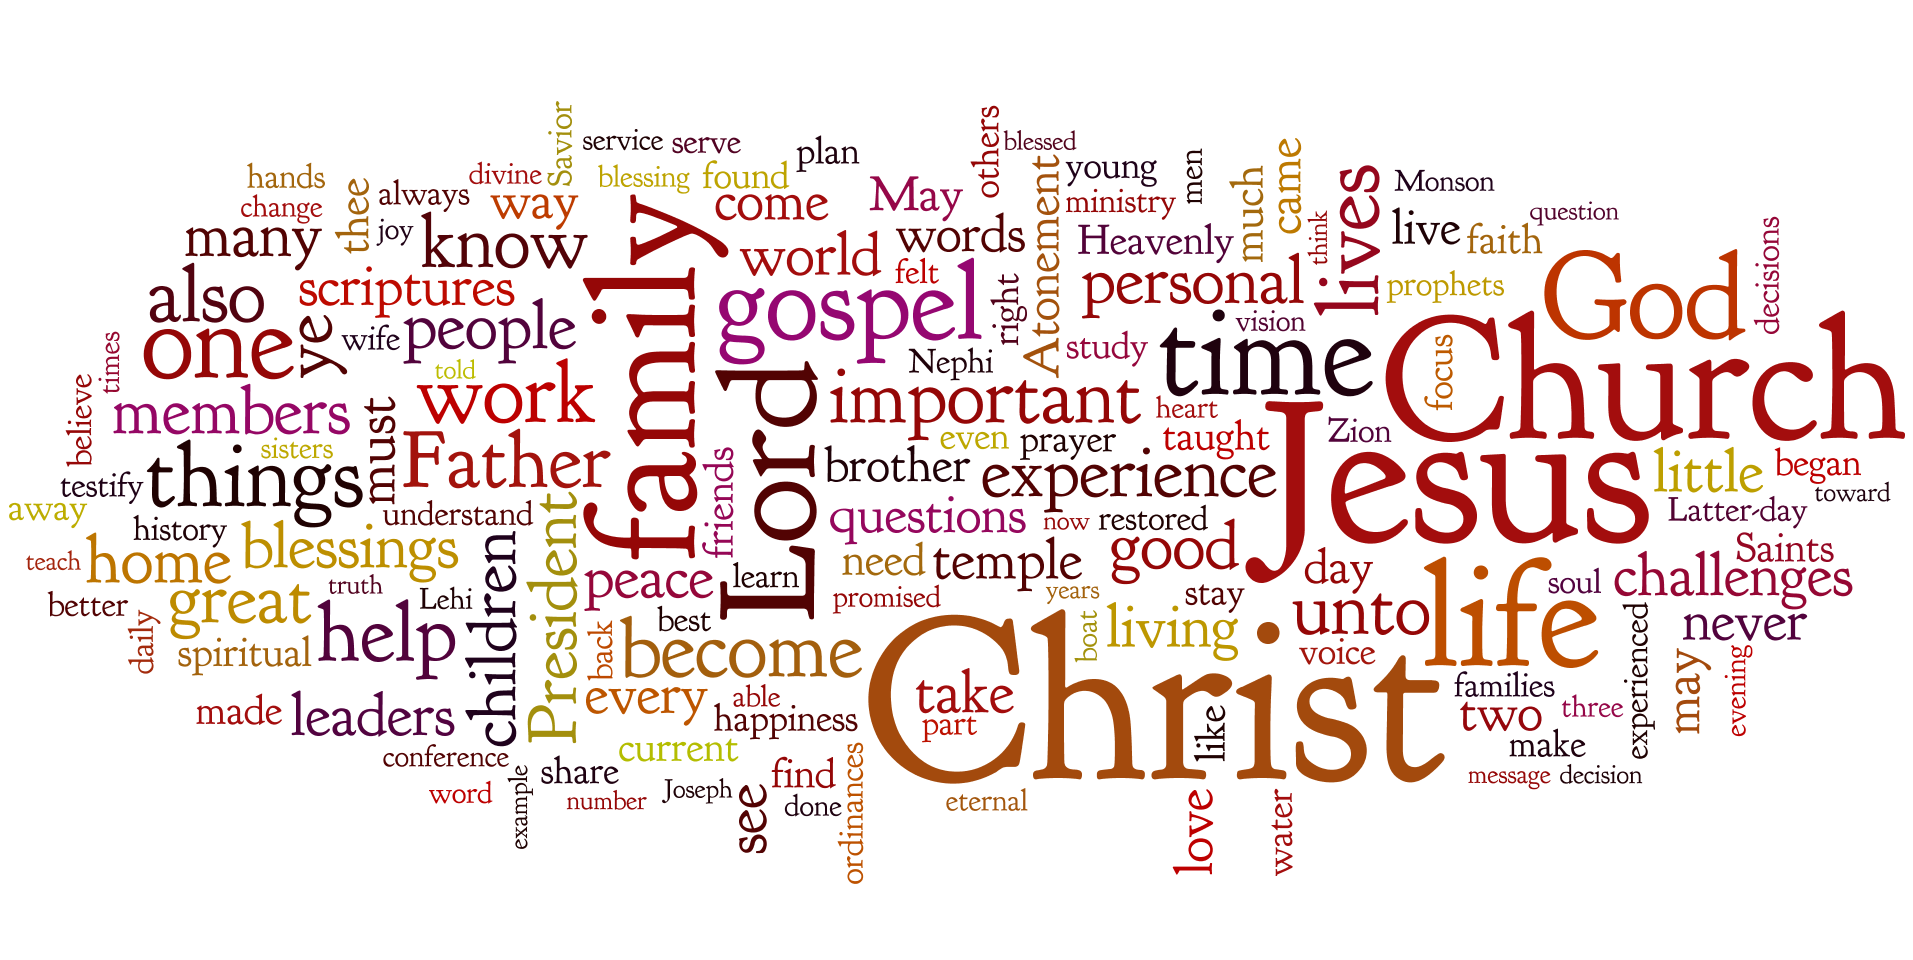 184th Semiannual General Conference Tag Clouds